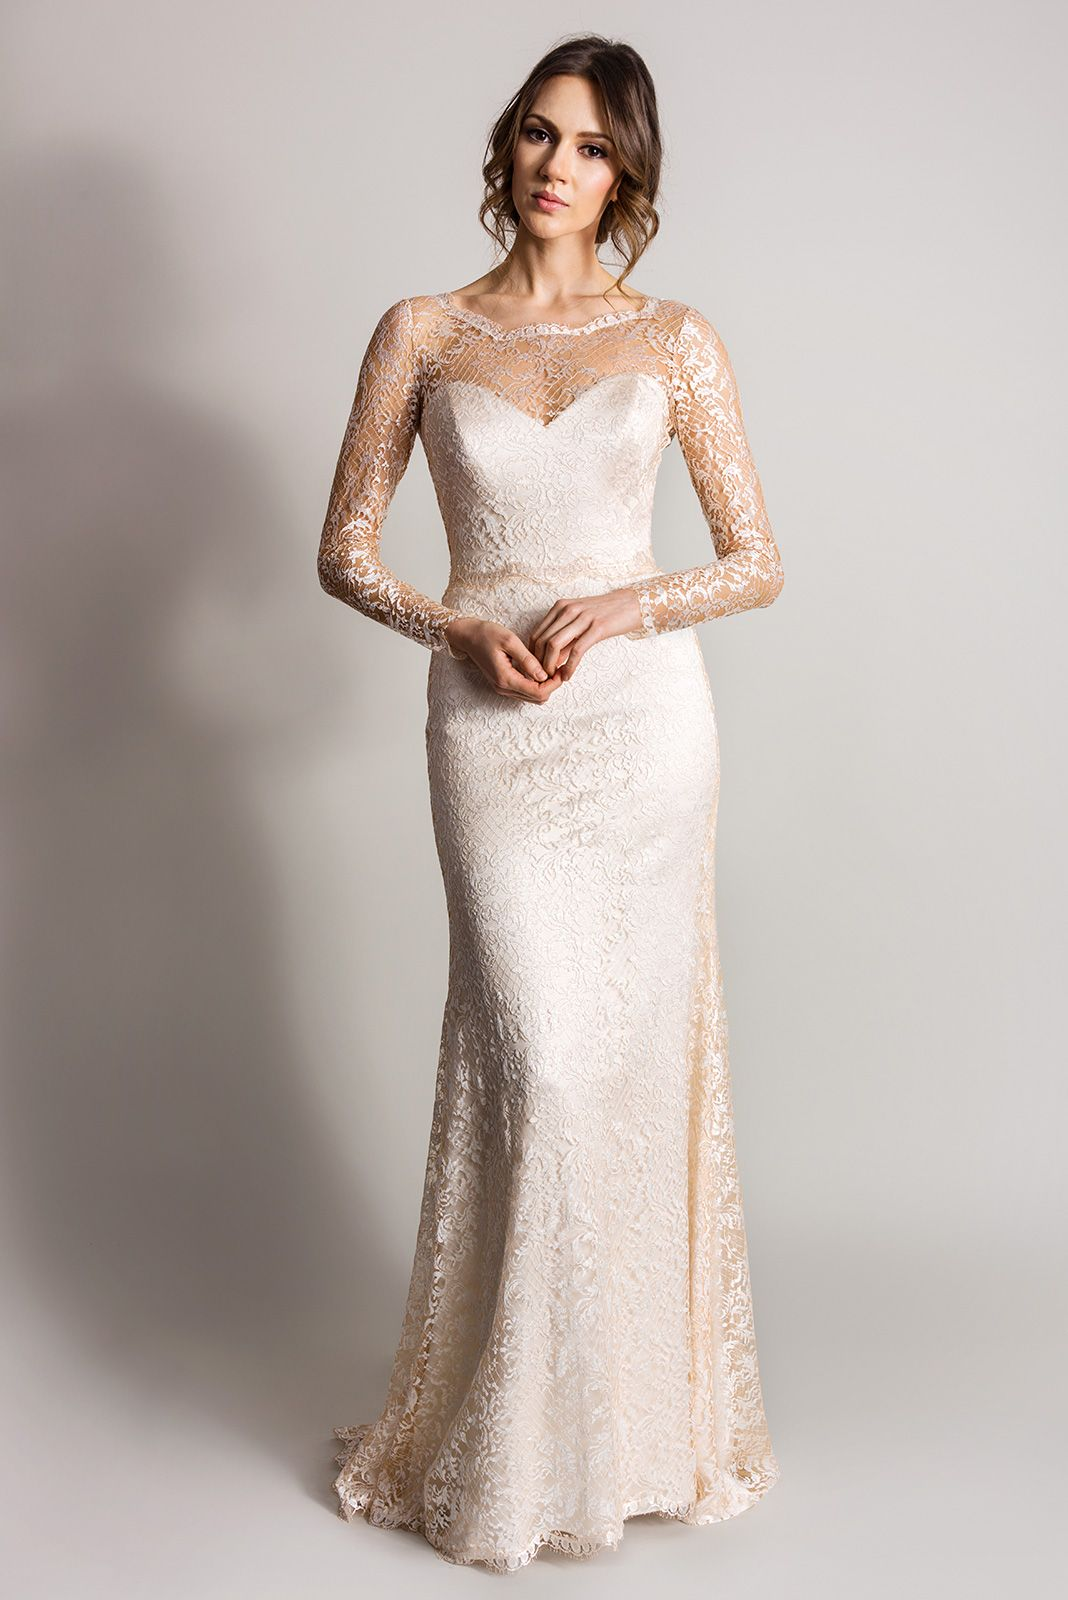 Coloured wedding dresses from top uk bridal designers colored coloured wedding dresses from top uk bridal designers ombrellifo Choice Image